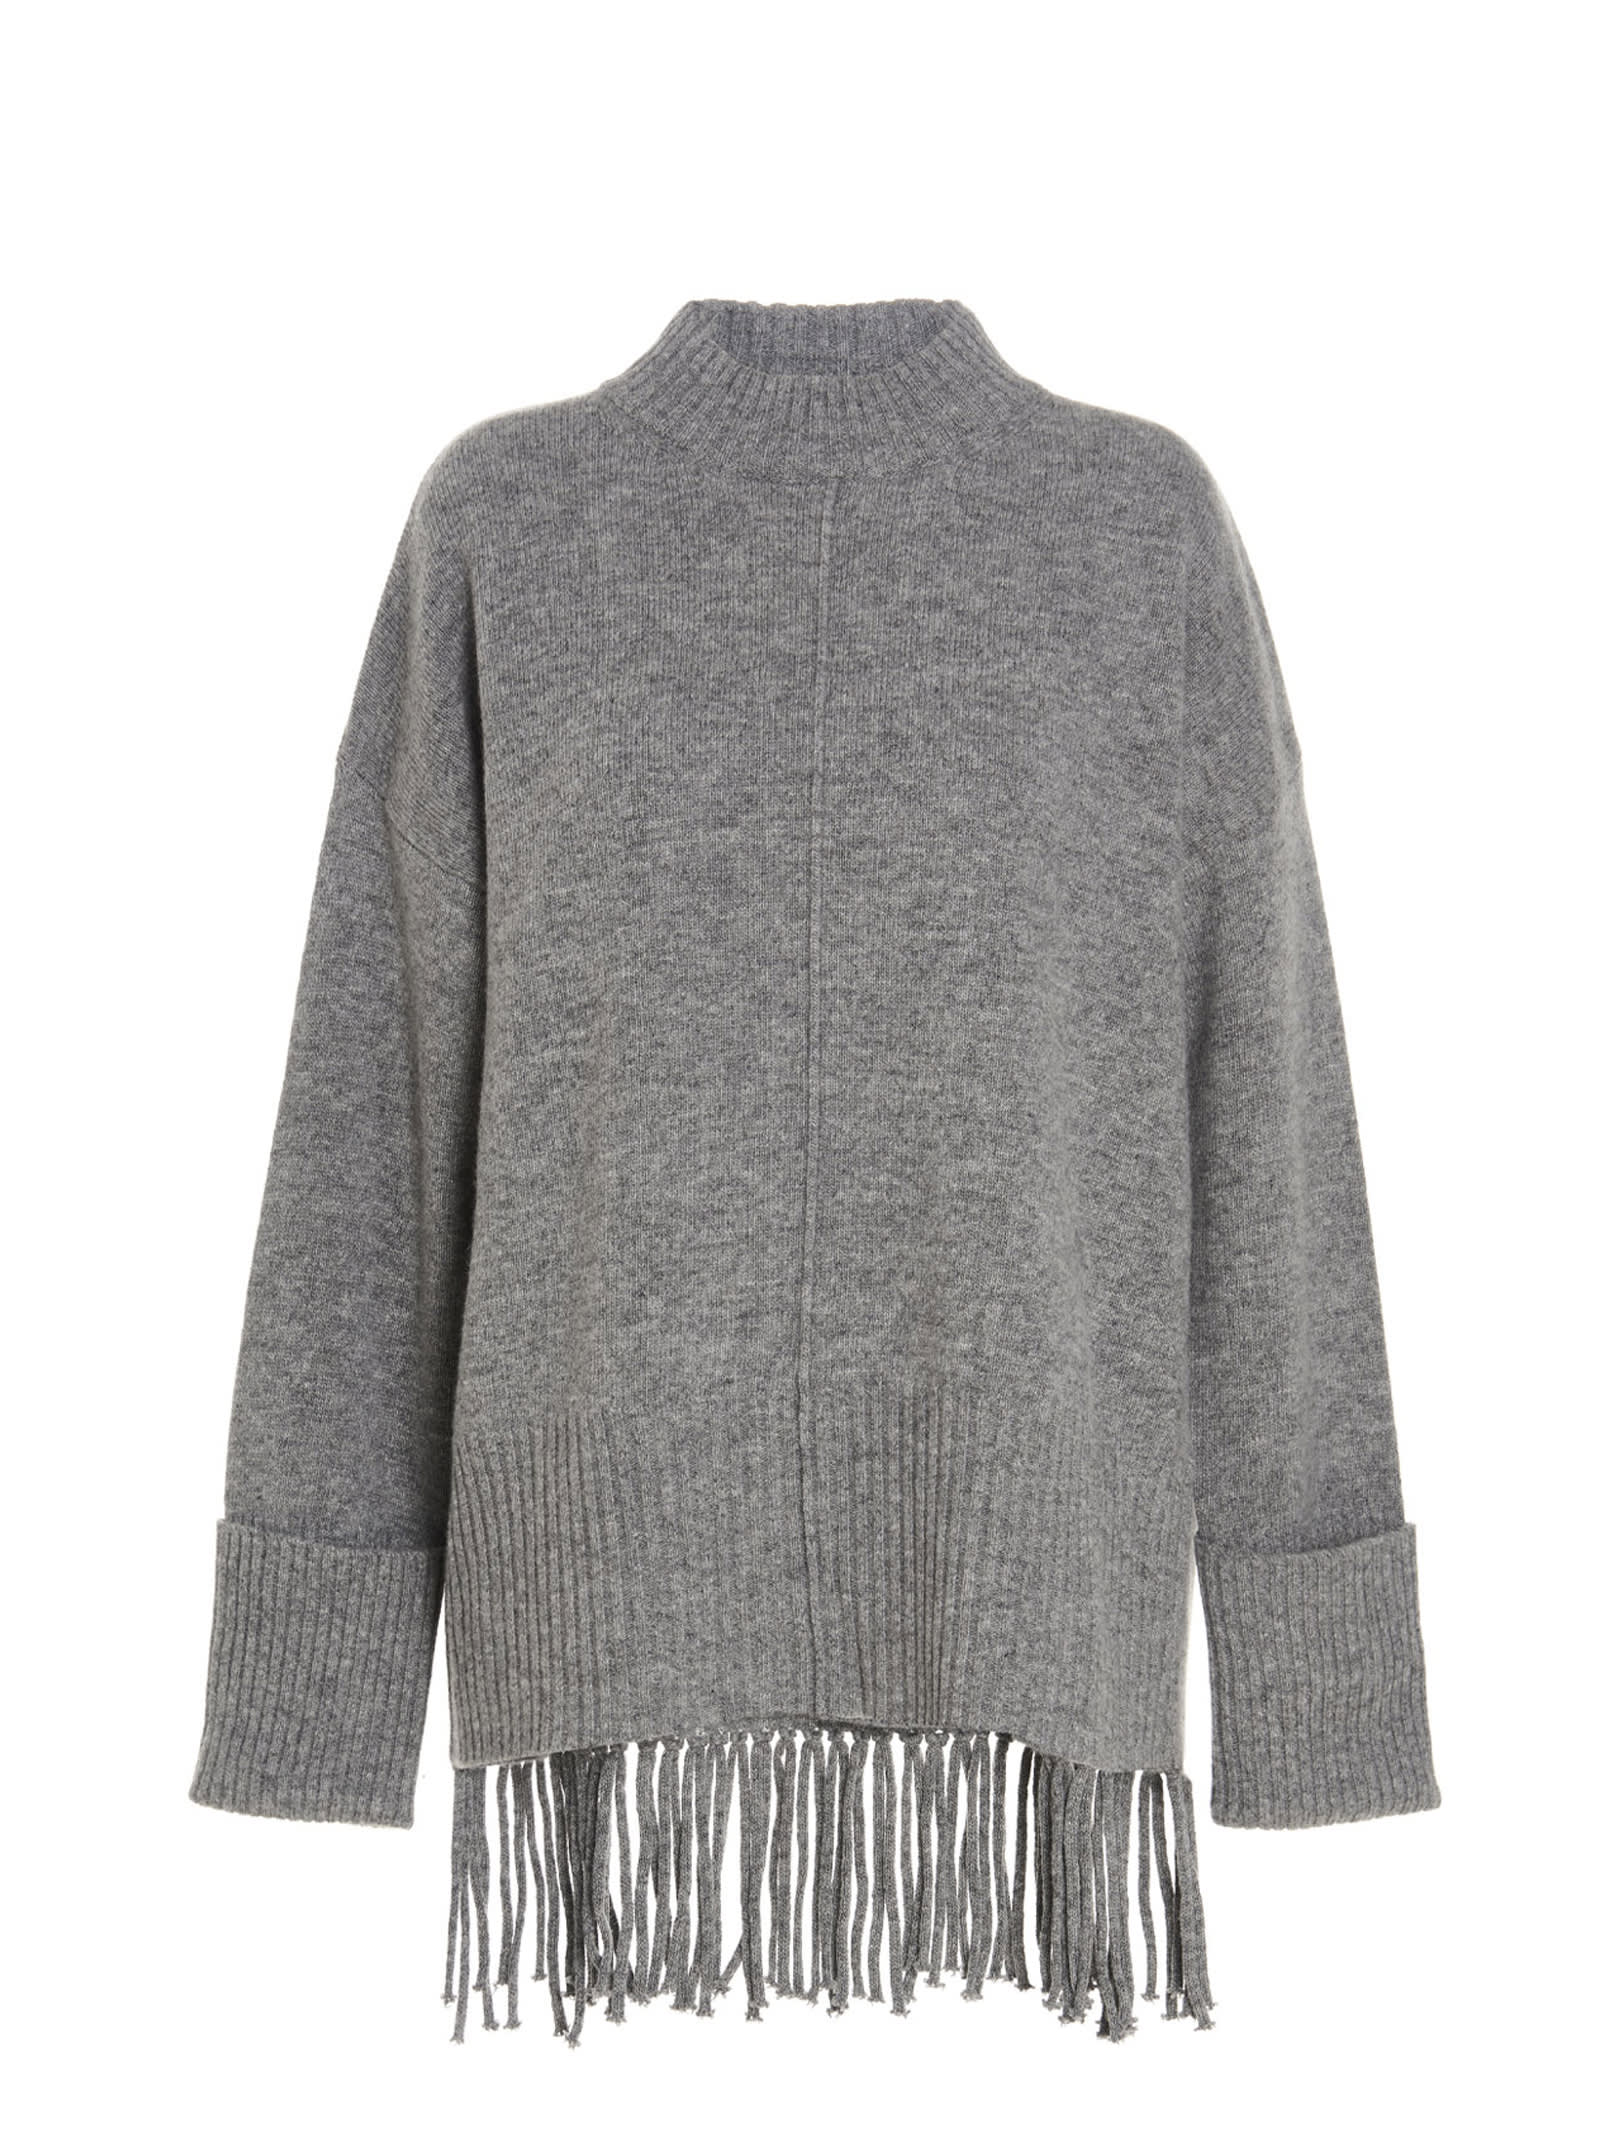 Jucca Fringes Sweater